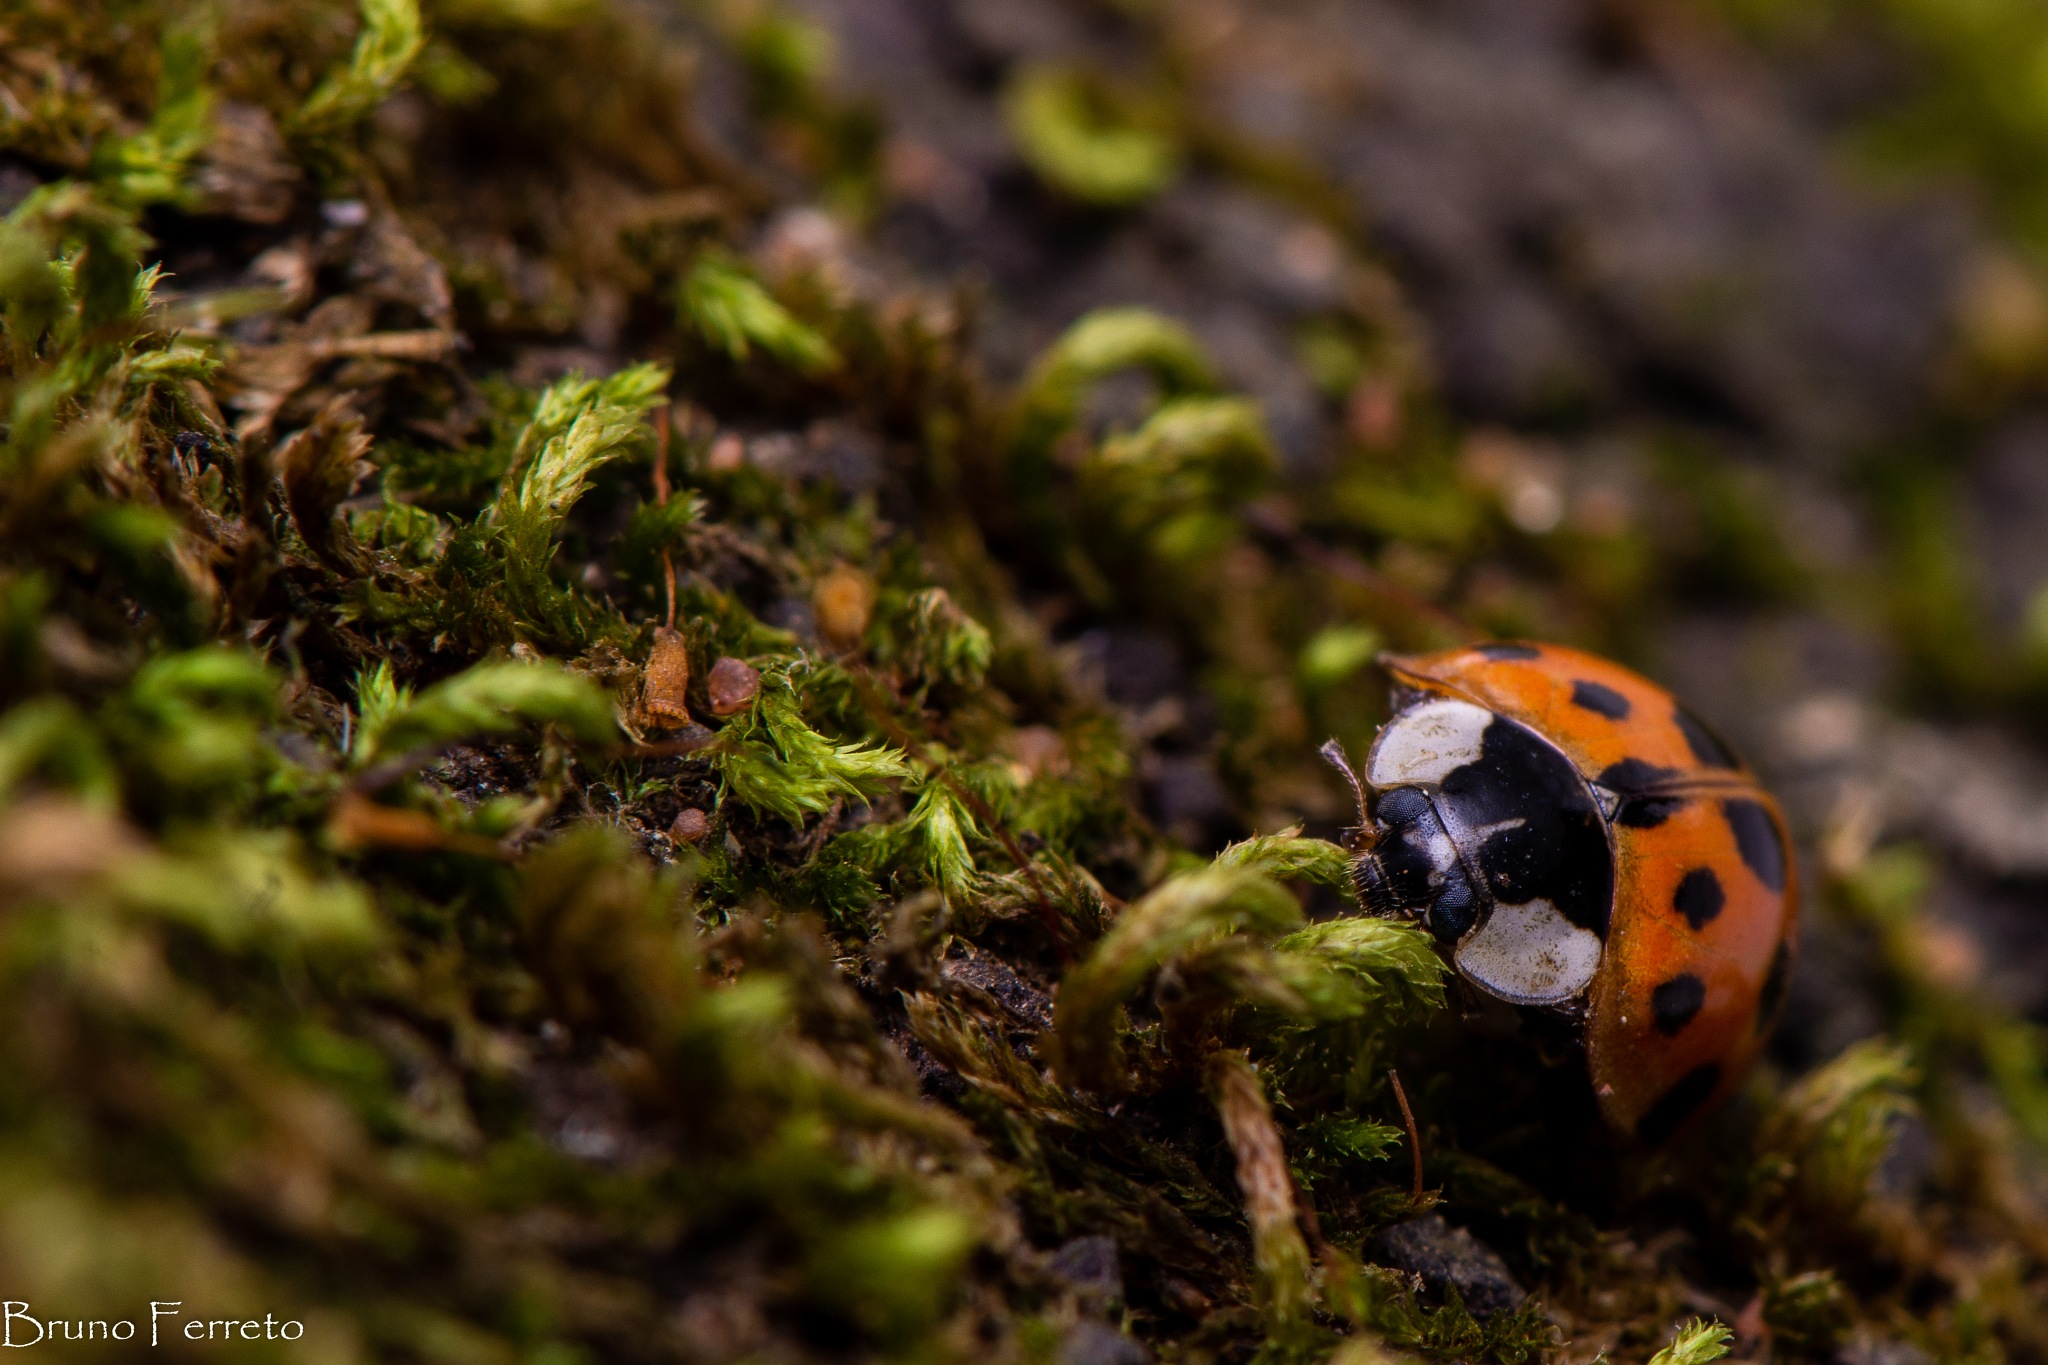 Lady bug by Bruno Ferreto